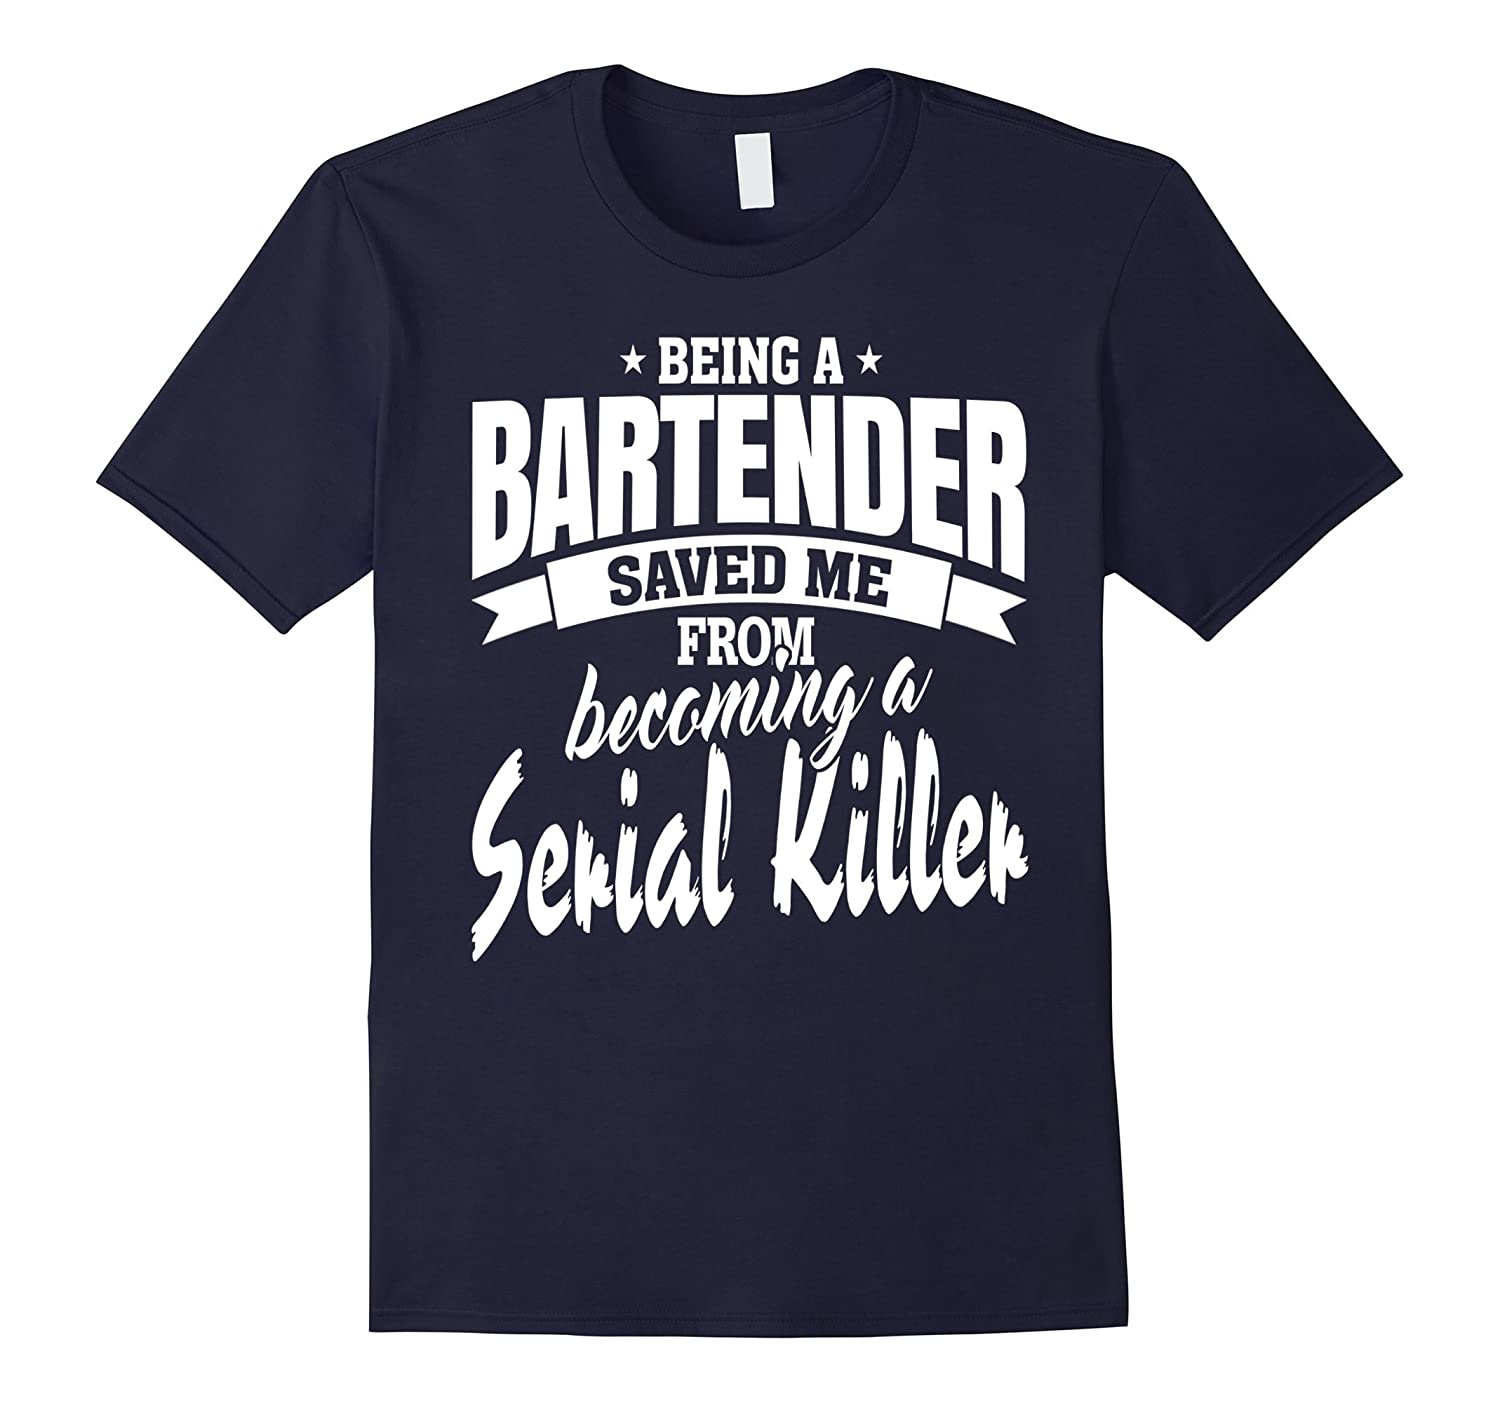 Being a Bartender Gifts Tee Shirt Clothing-TJ